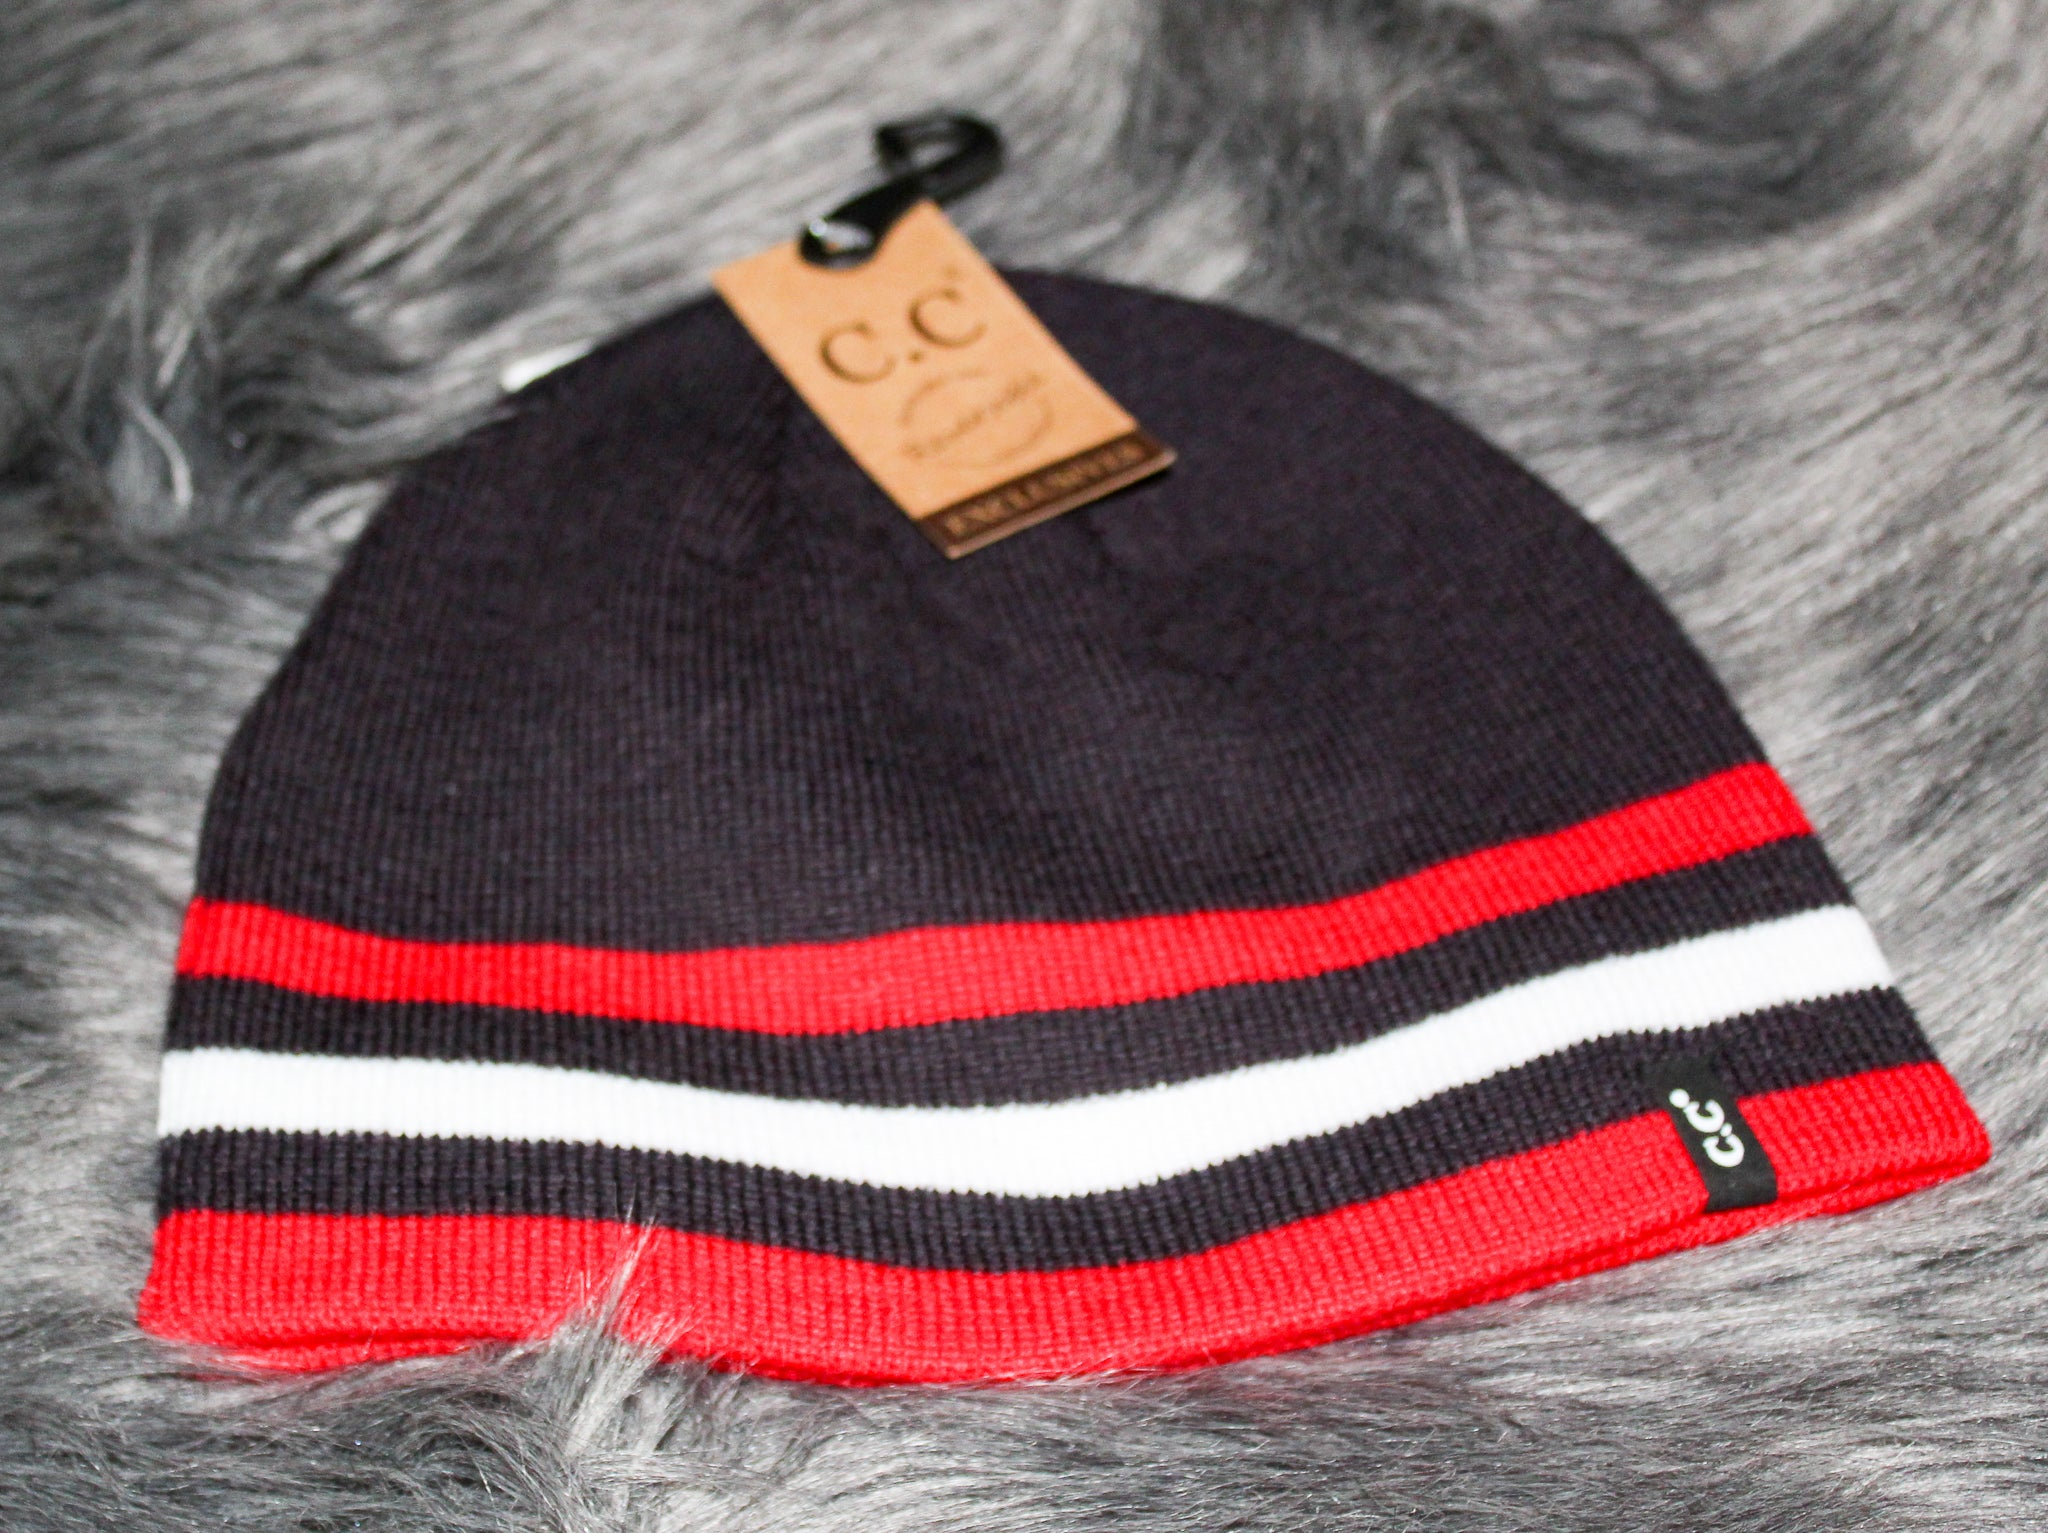 The Man's Beanie